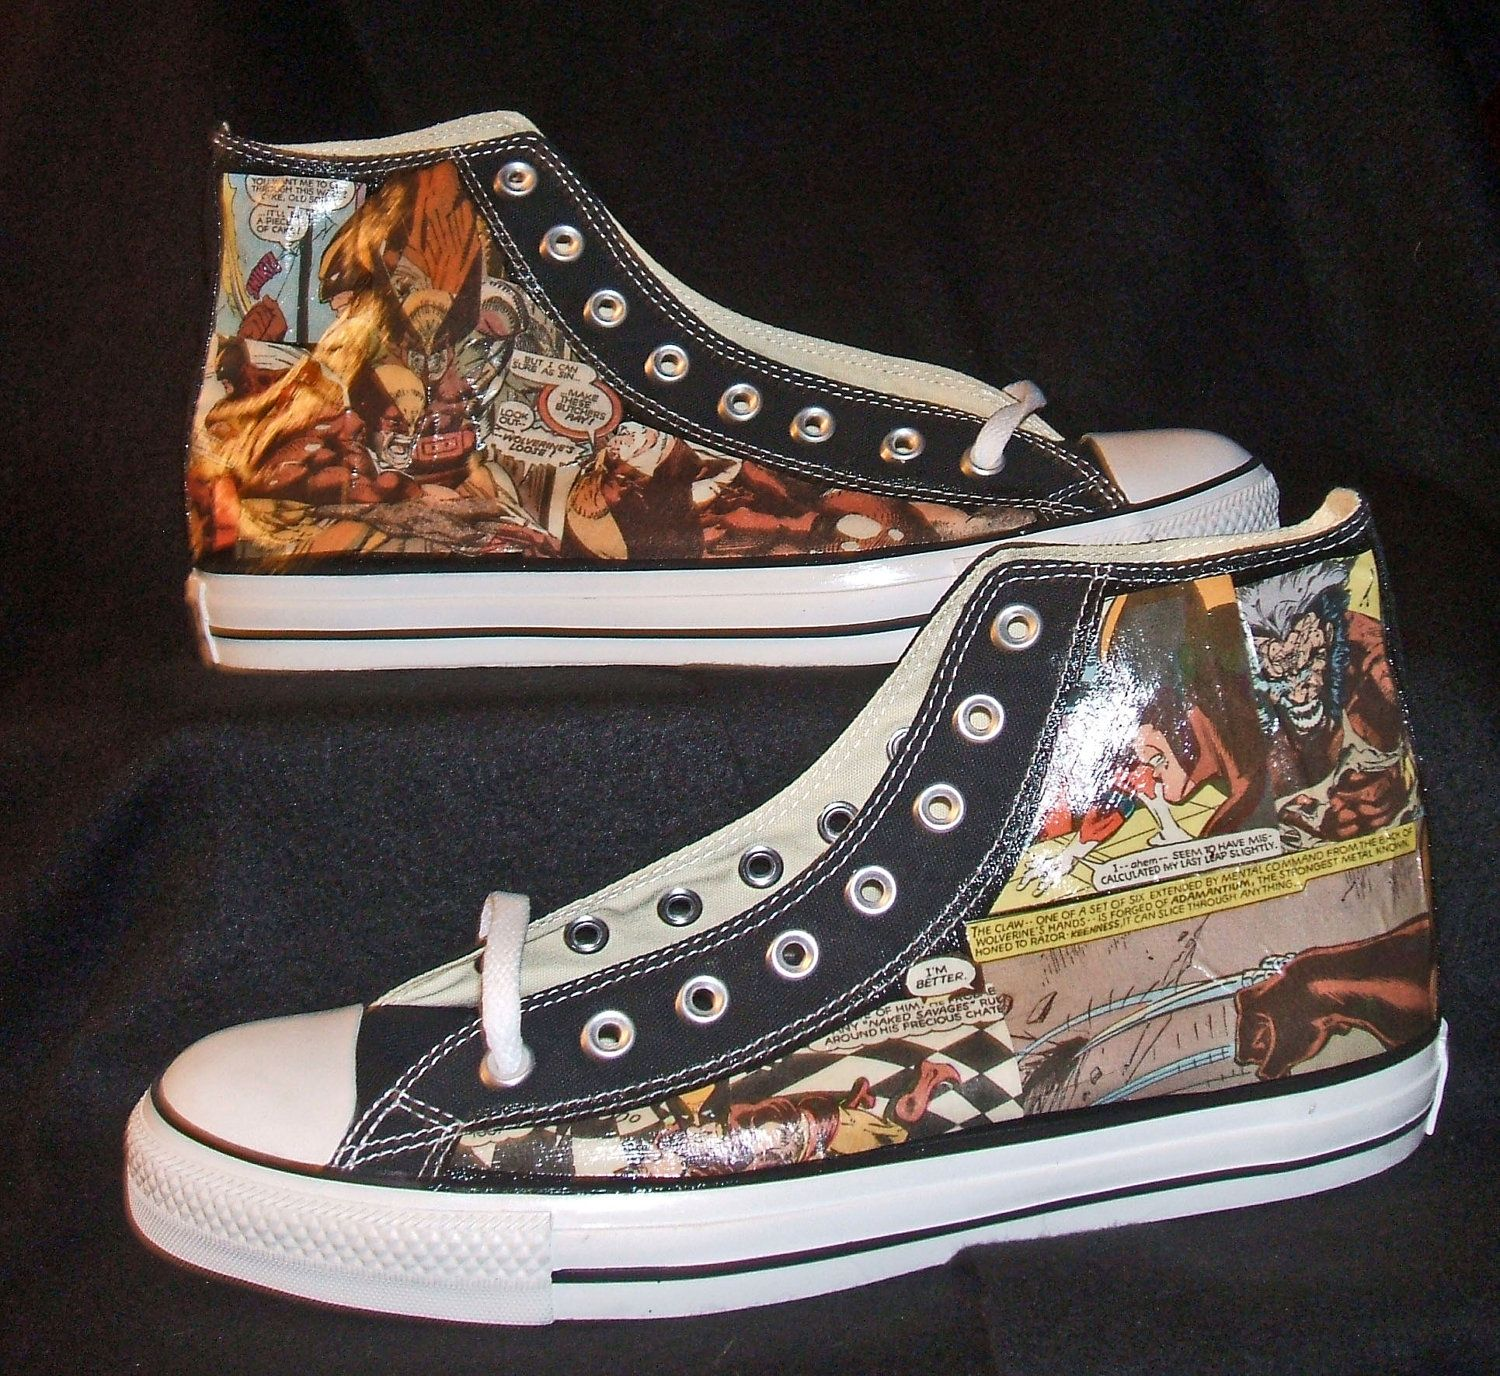 sneakers for cheap fc232 86a29 Wolverine X Men Marvel Comic Book Shoe - Geekery - Men - Converse Chuck  Taylor AllStar.  100.00, via Etsy.